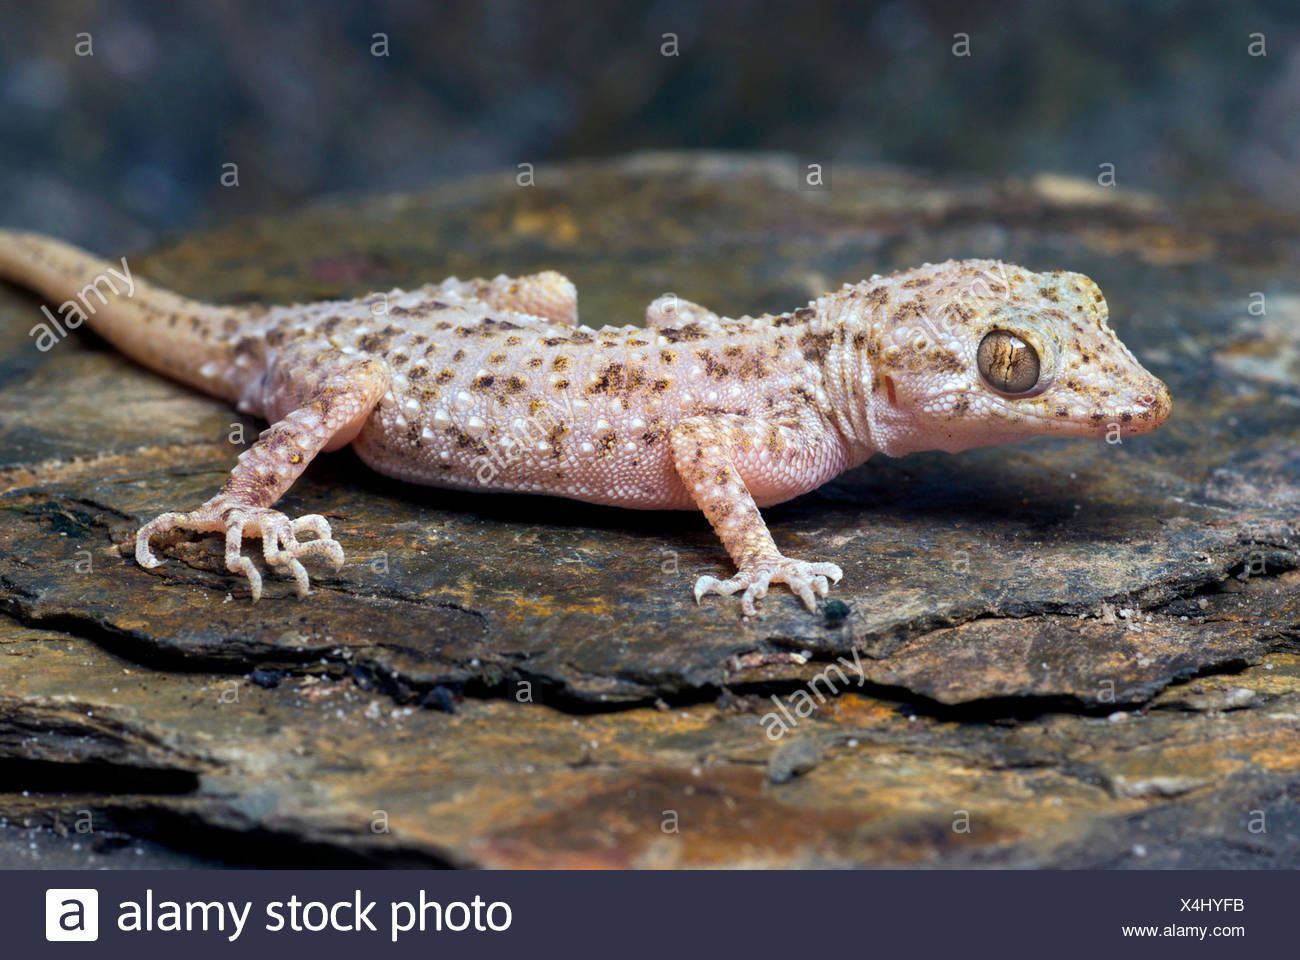 Rough-skinned gecko, Keeled gecko, Bent-toed gecko (Cyrtopodion scaber), on a stone - Stock Image